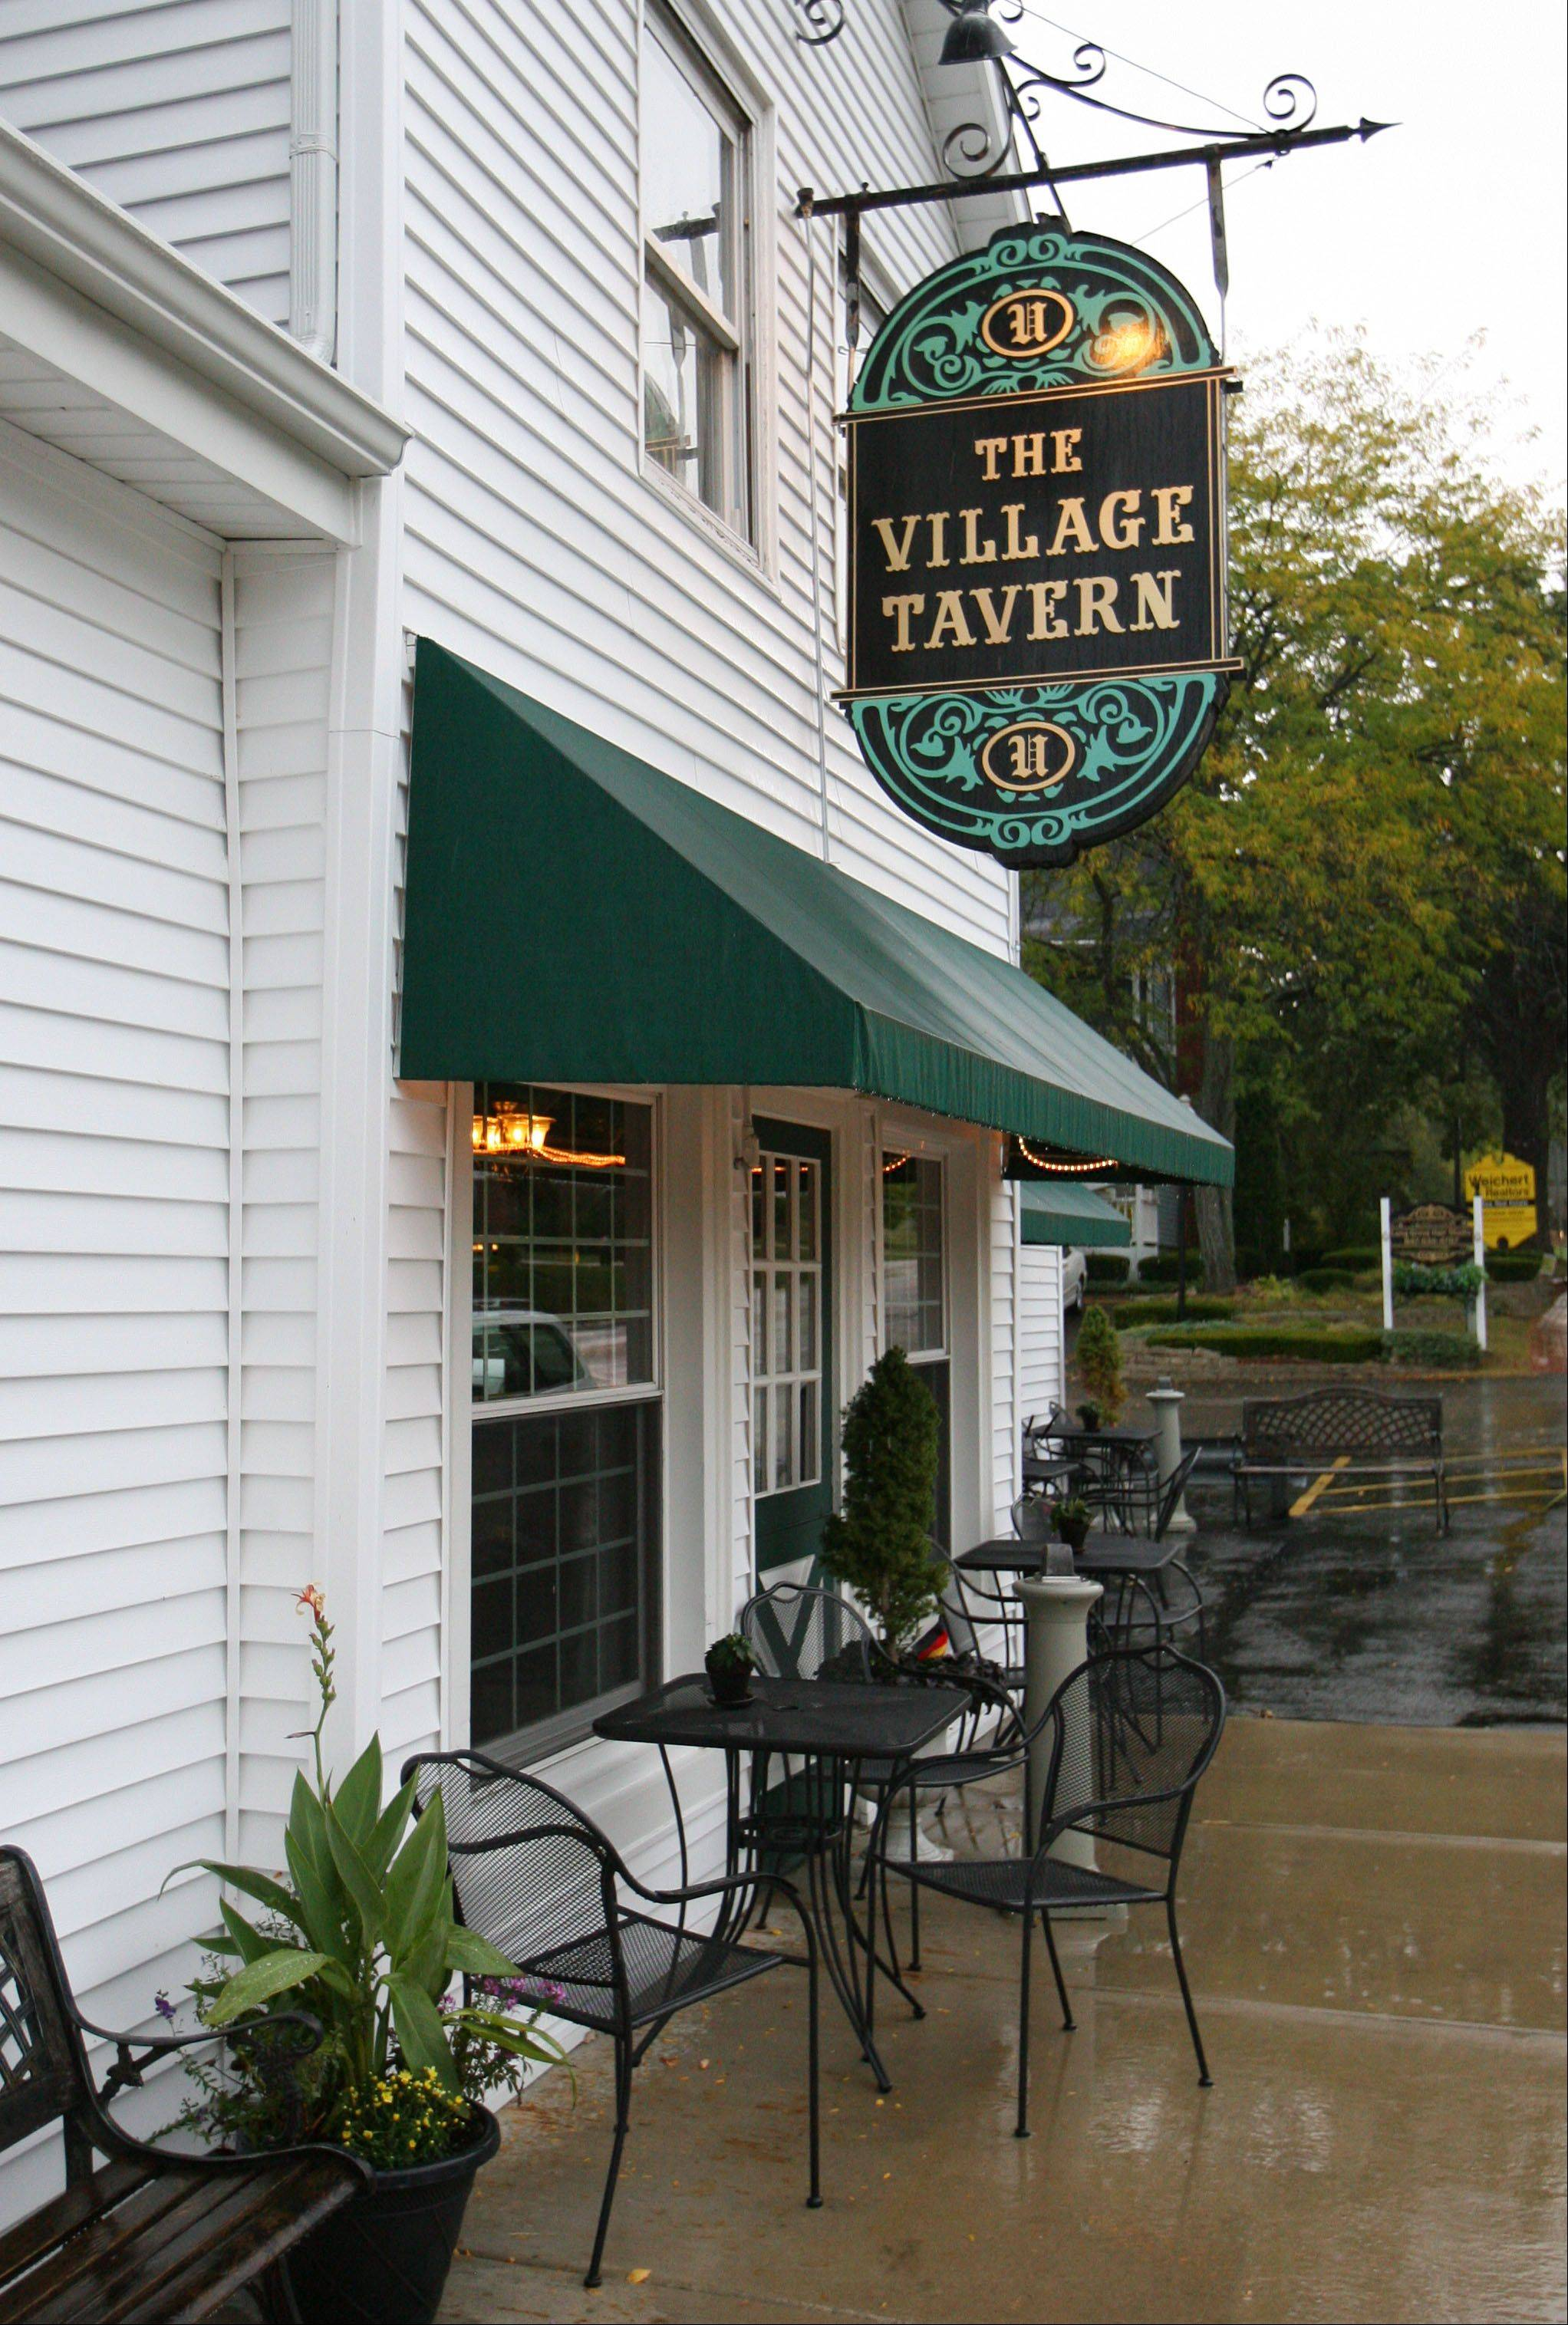 The Village Tavern in Long Grove marks its 50th anniversary this year.